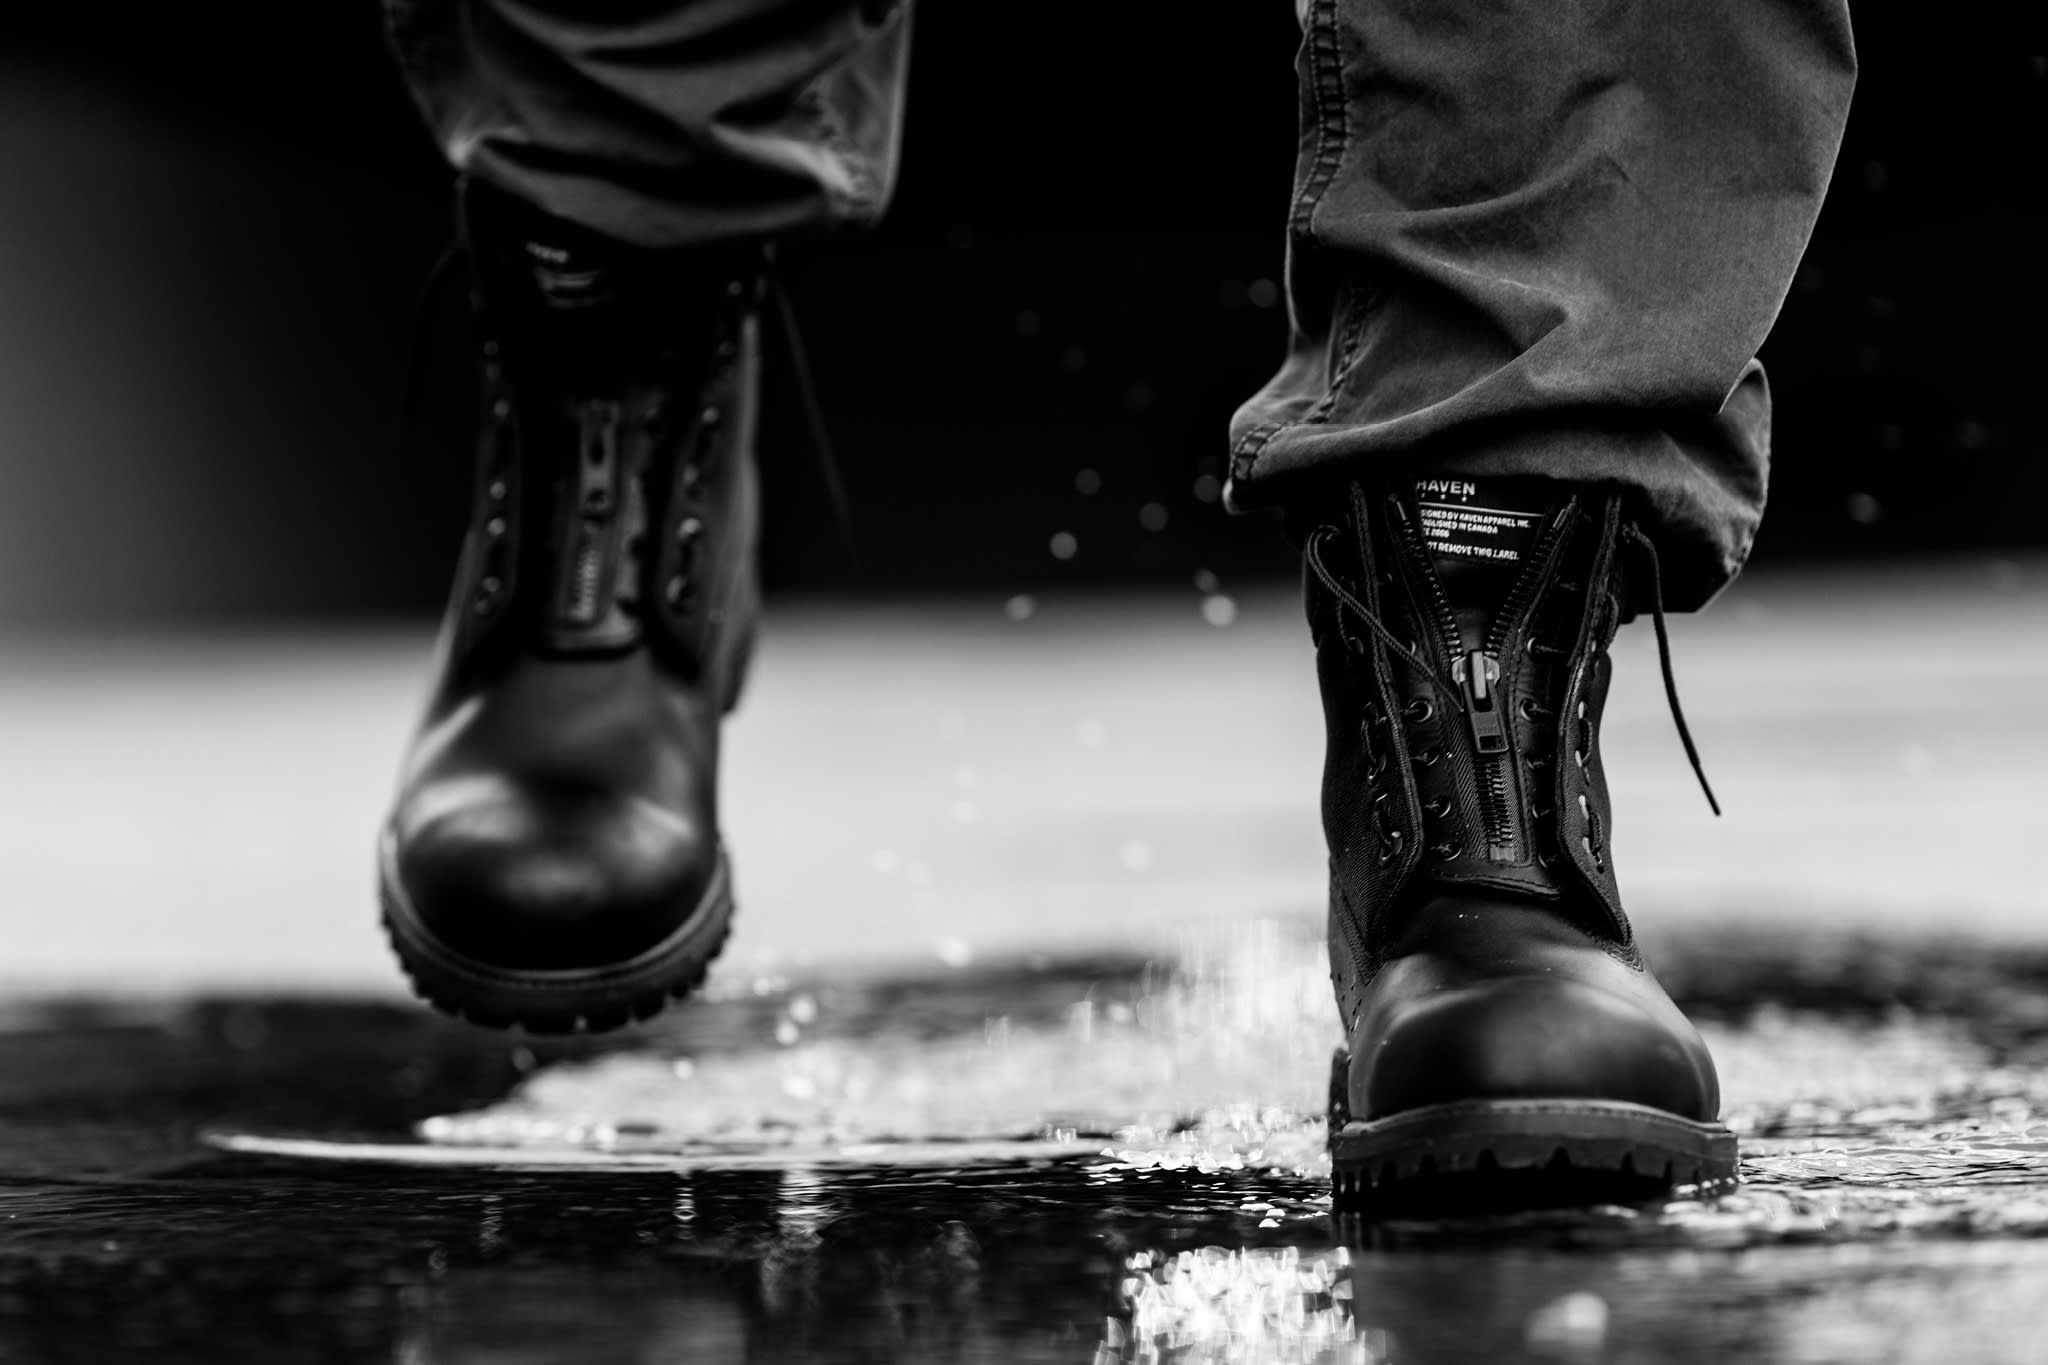 b5b1c47cd48 HAVEN / Timberland® GORE-TEX® 6-Inch Boots Editorial | HAVEN